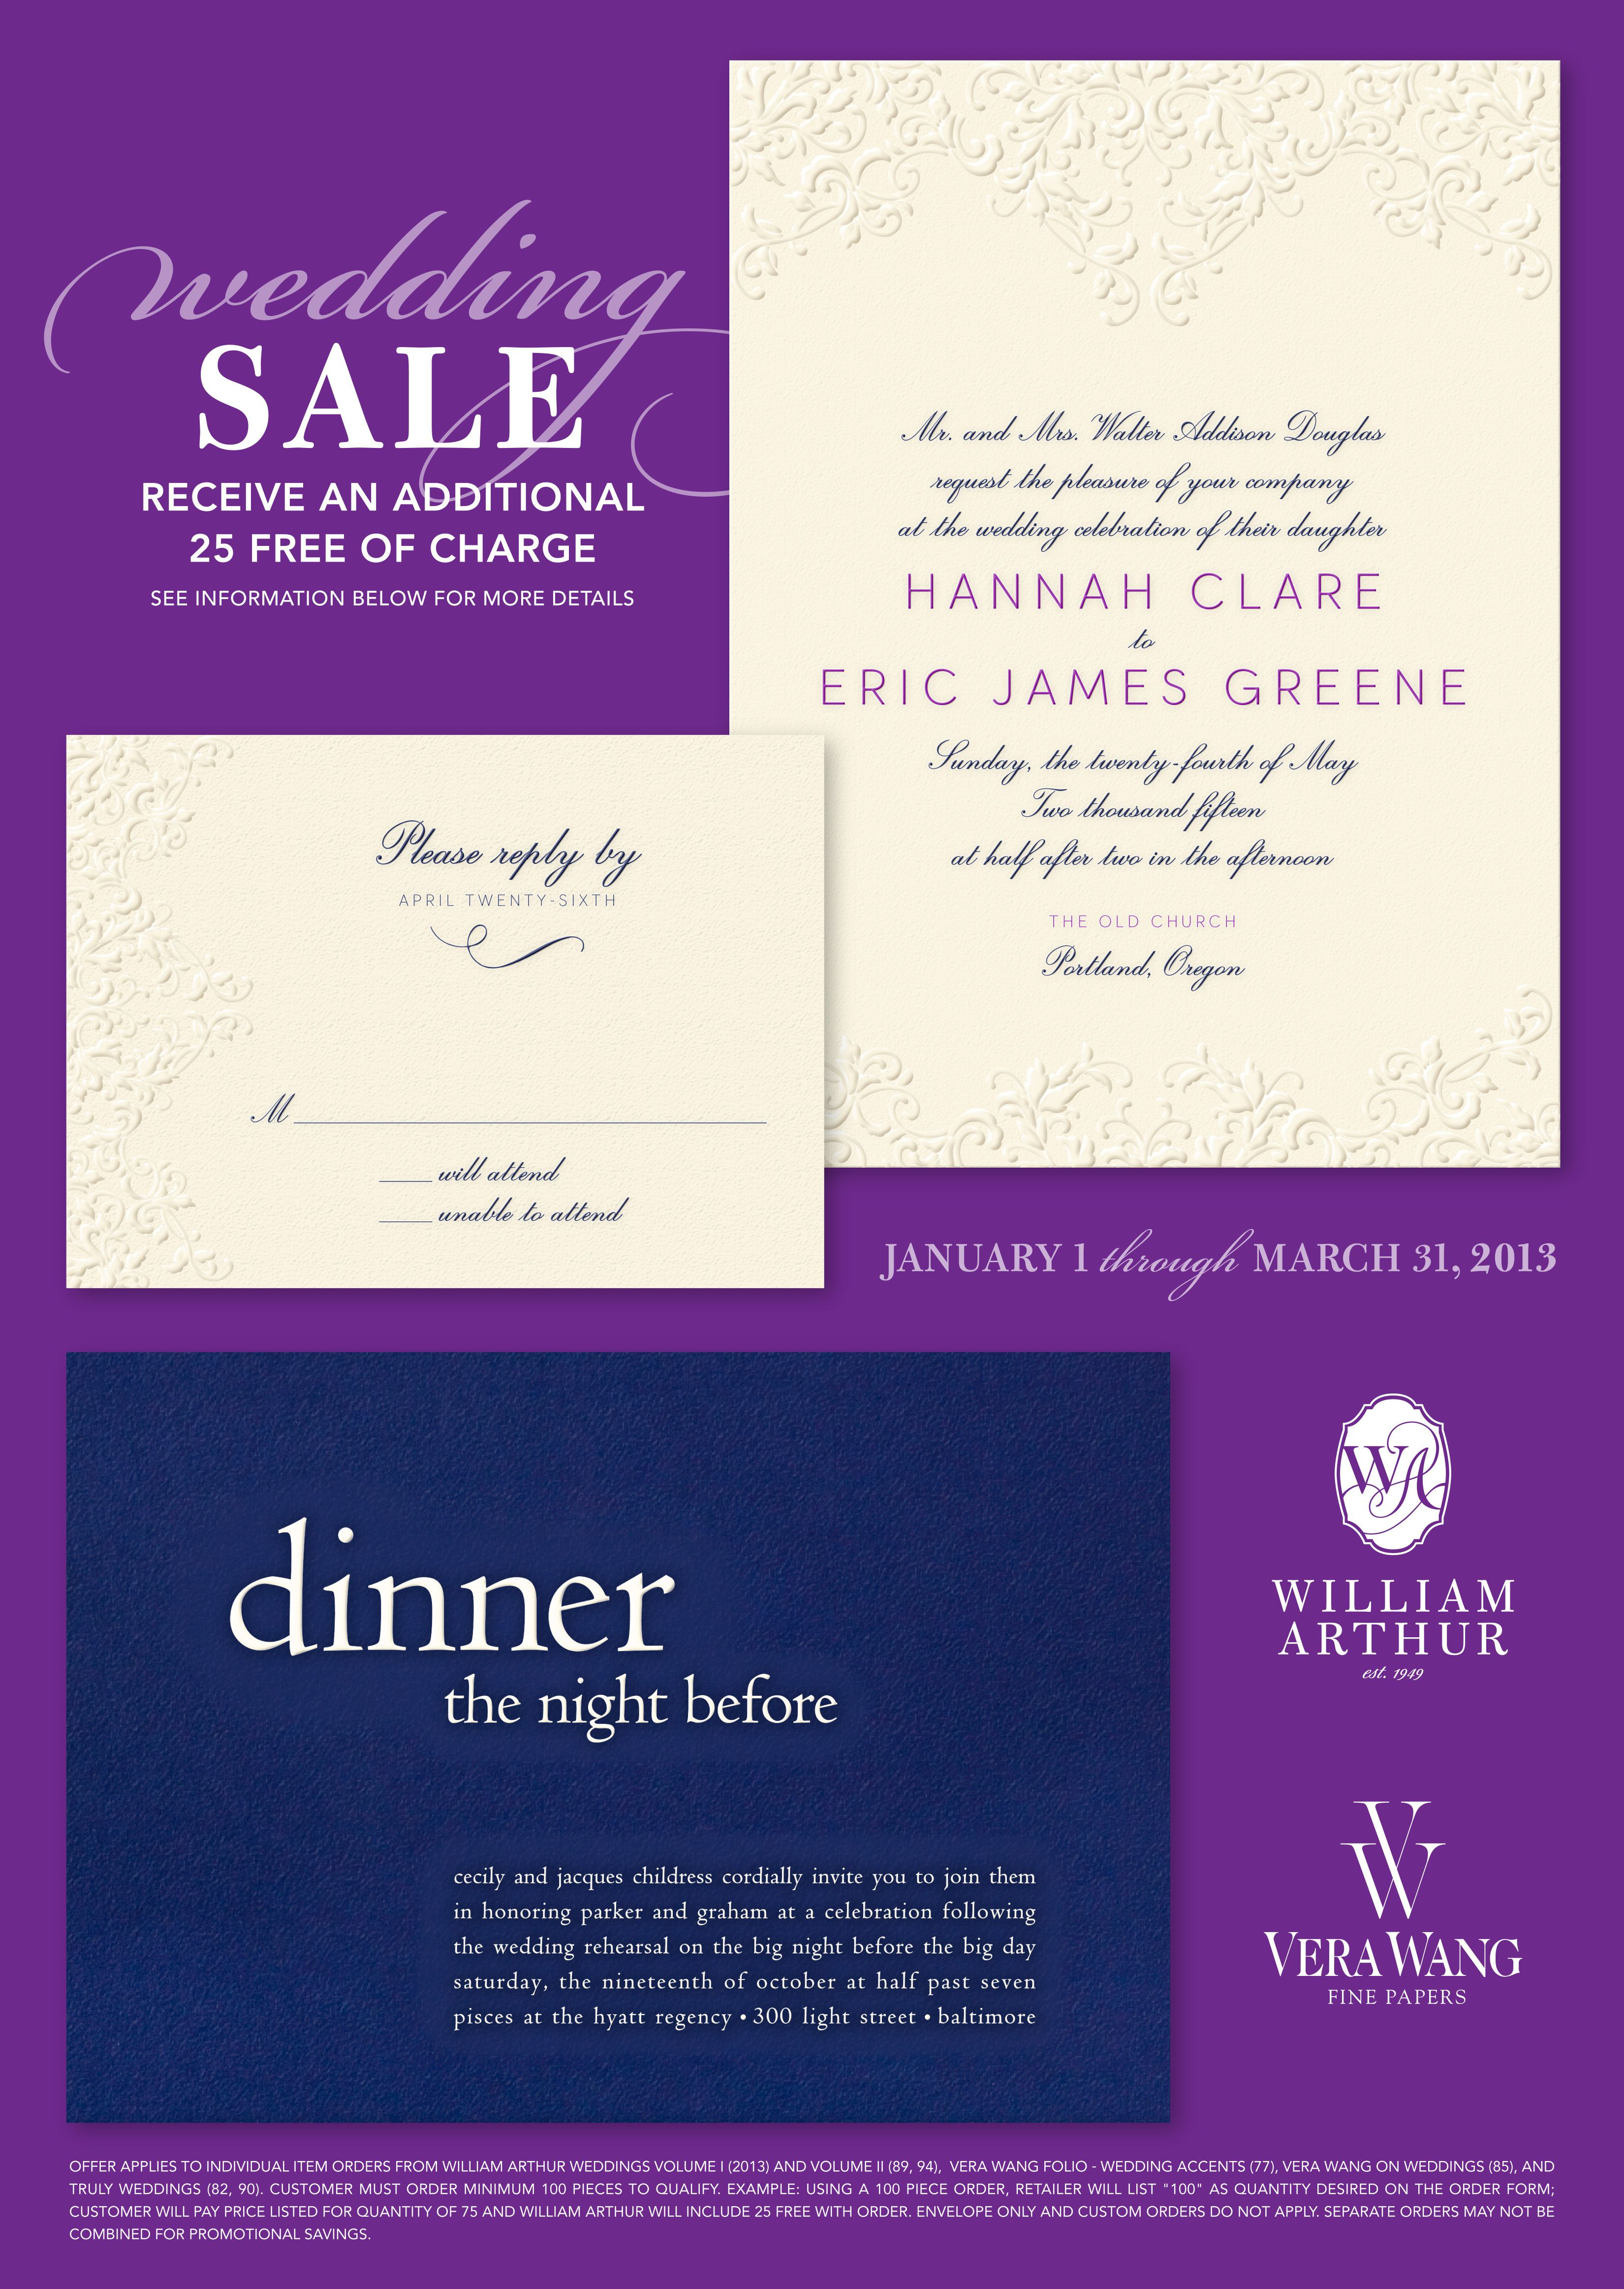 Buy Any 75 William Arthur Wedding Invitations Receive 25 Free Now Until March 31 2013 At Note Worthy Wedding Sale Wedding Wedding Invitations